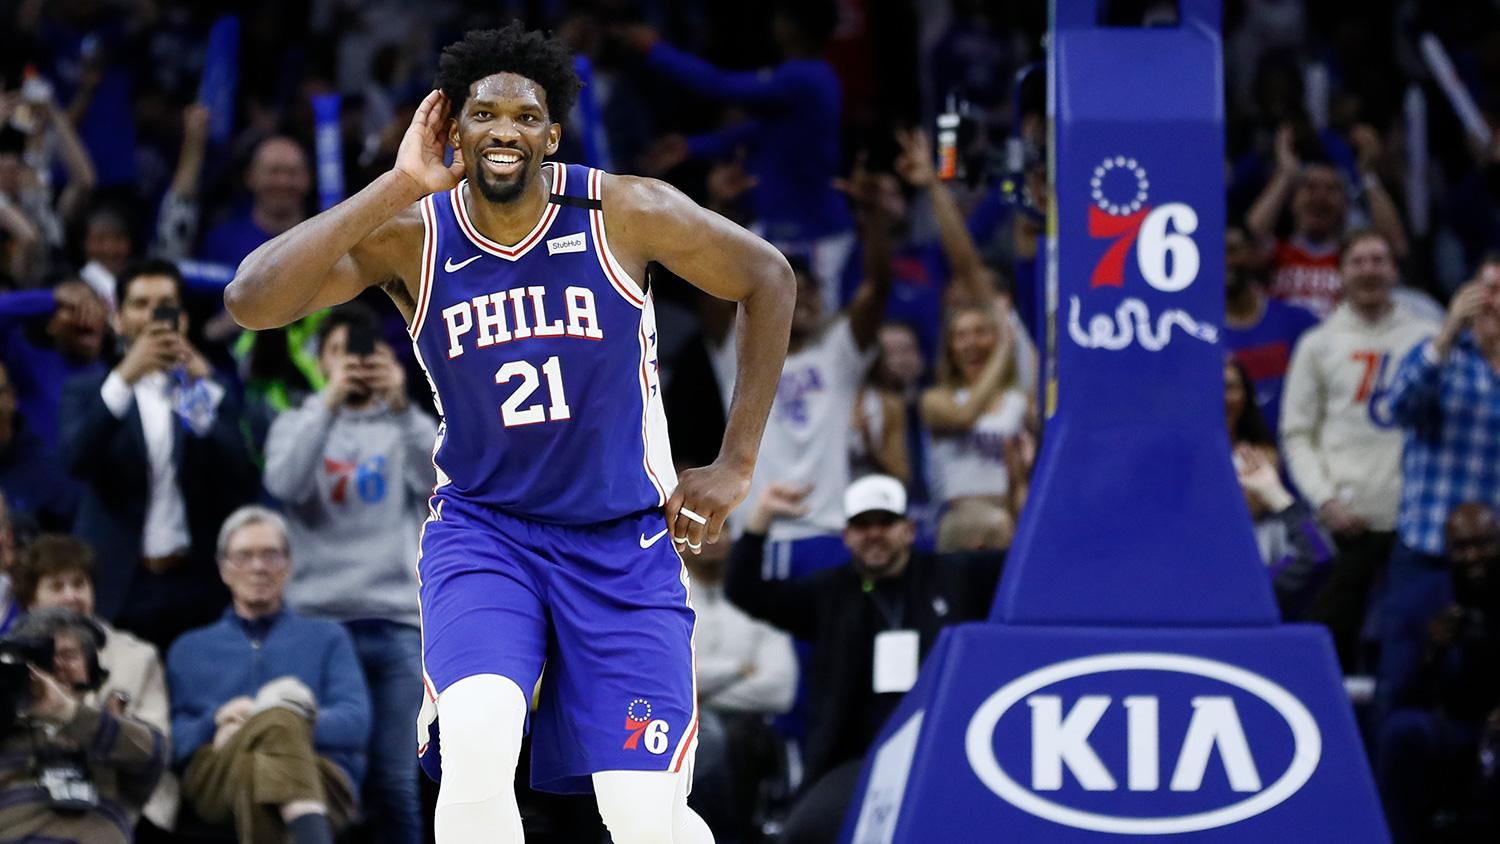 Brett Brown insists Joel Embiid has 'real desire' to be at career-best weight